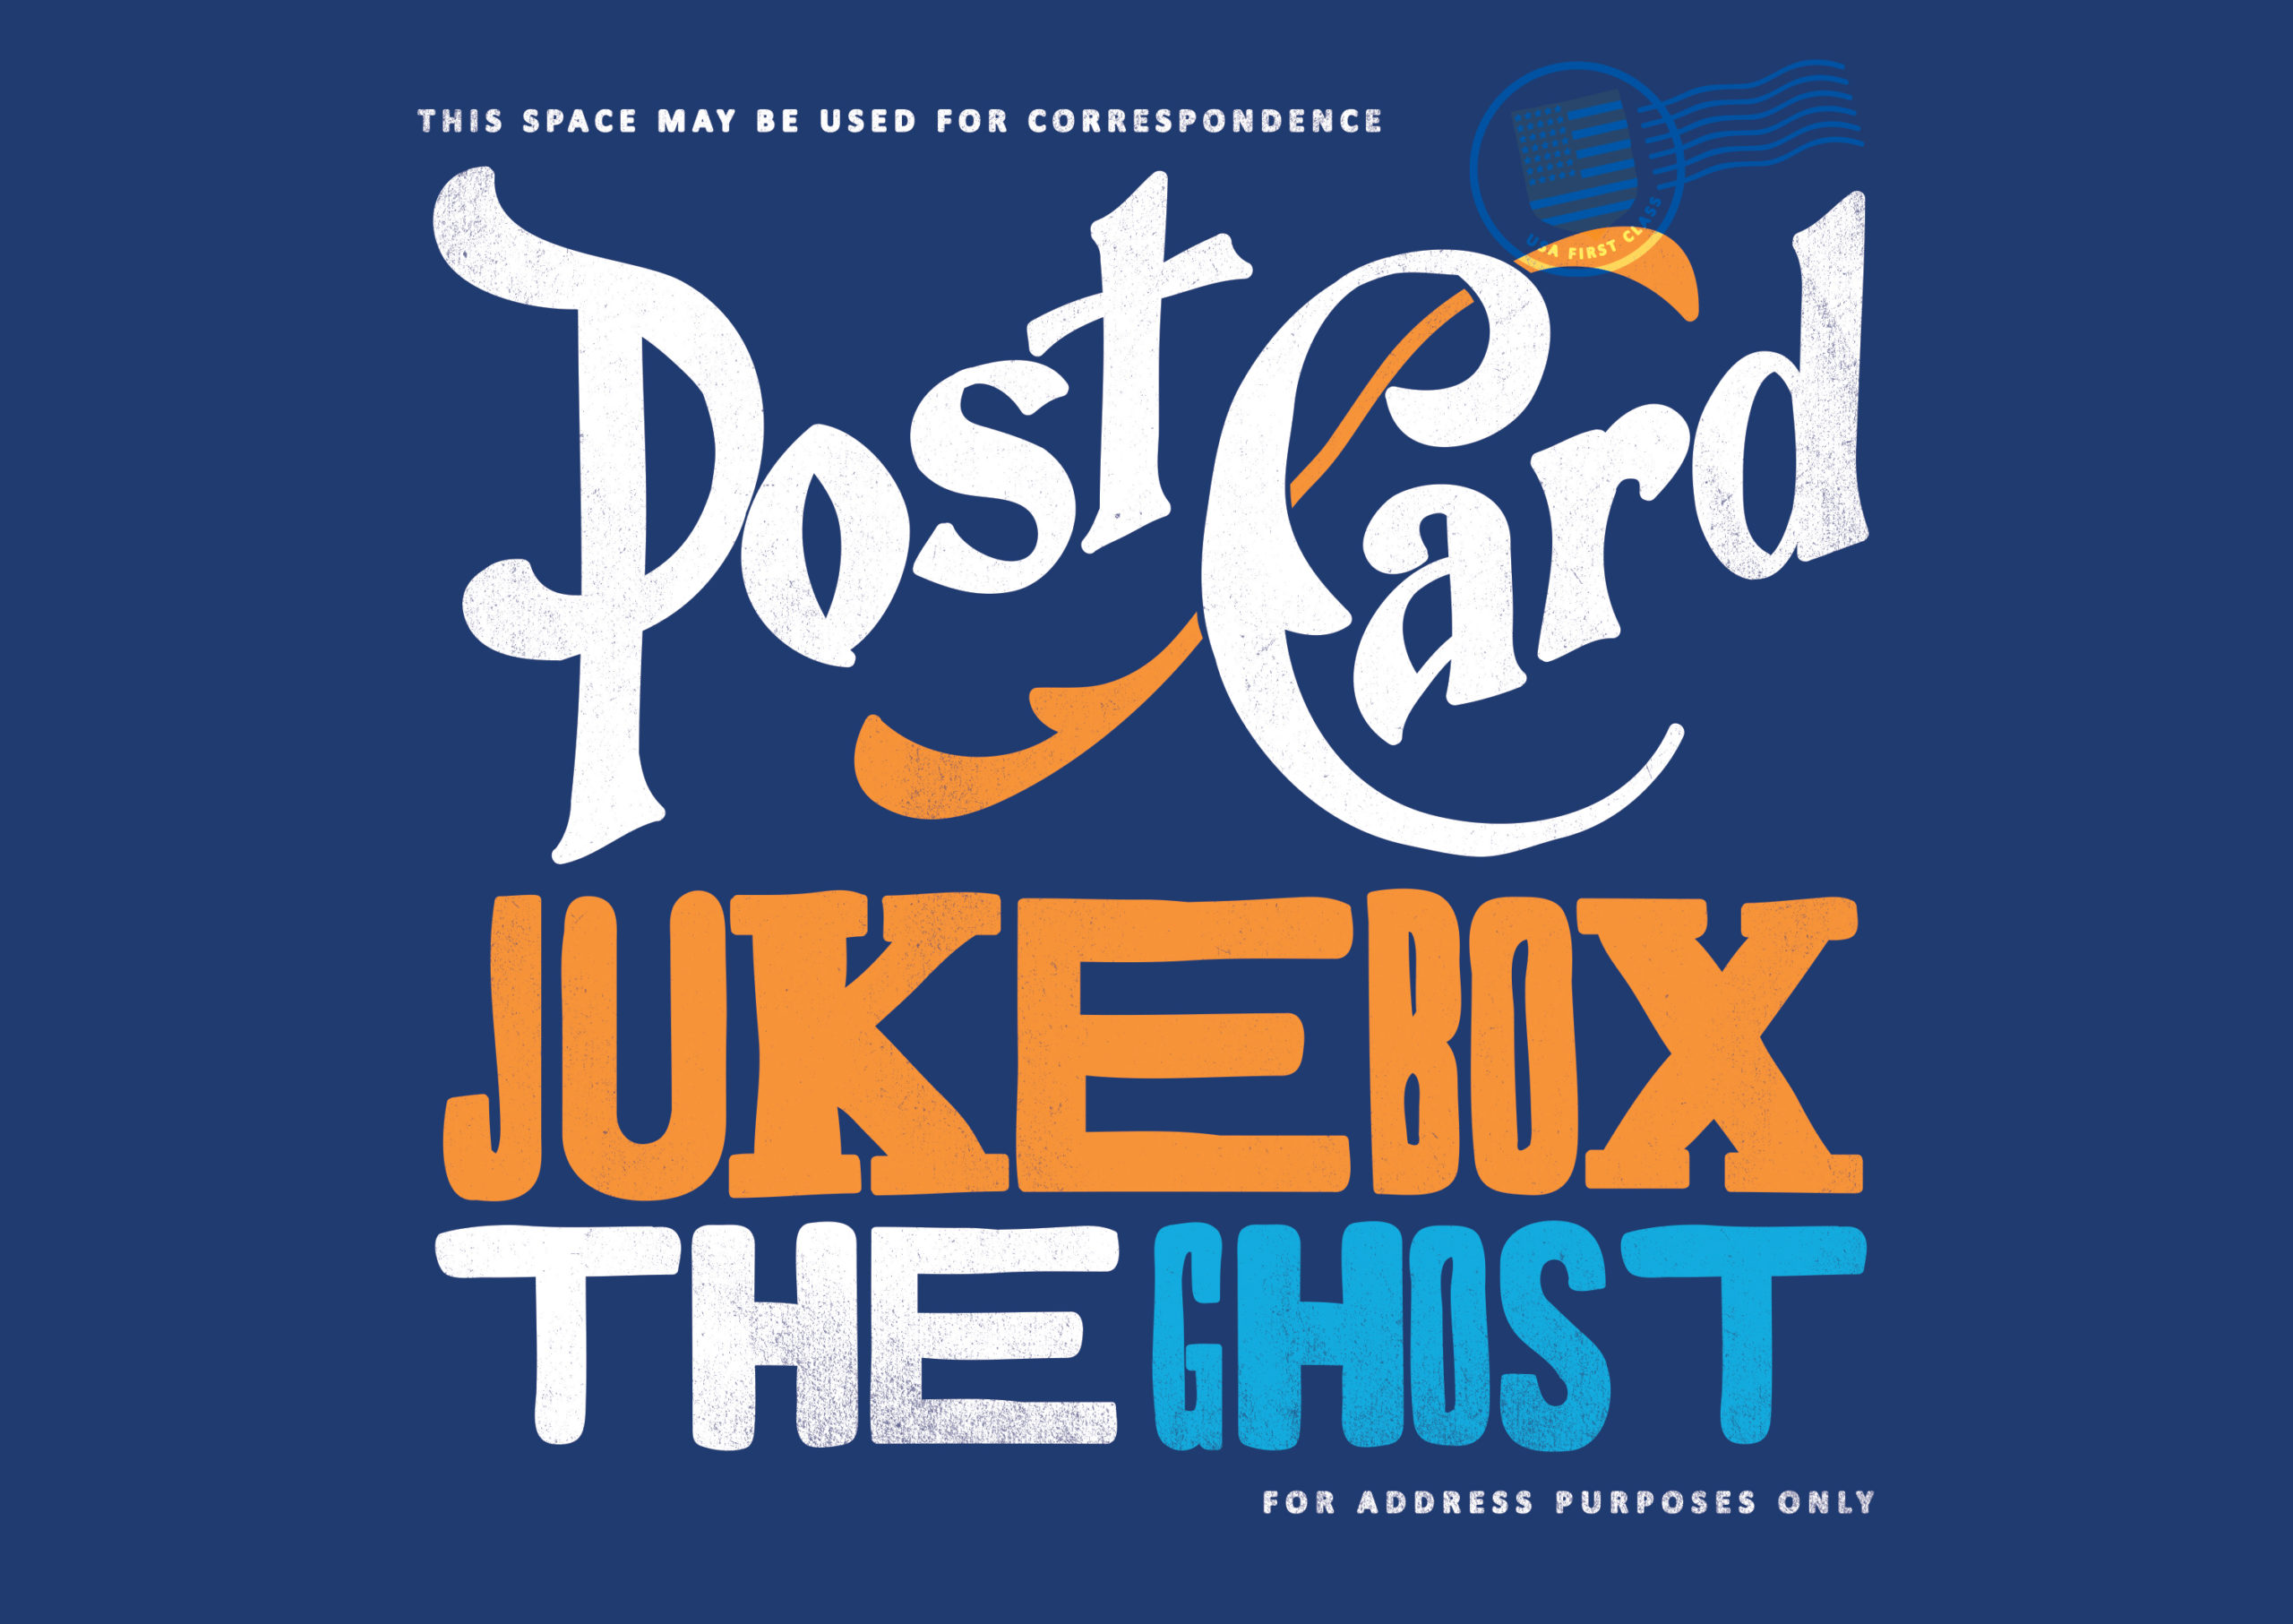 jukebox-the-ghost-postcard-v2